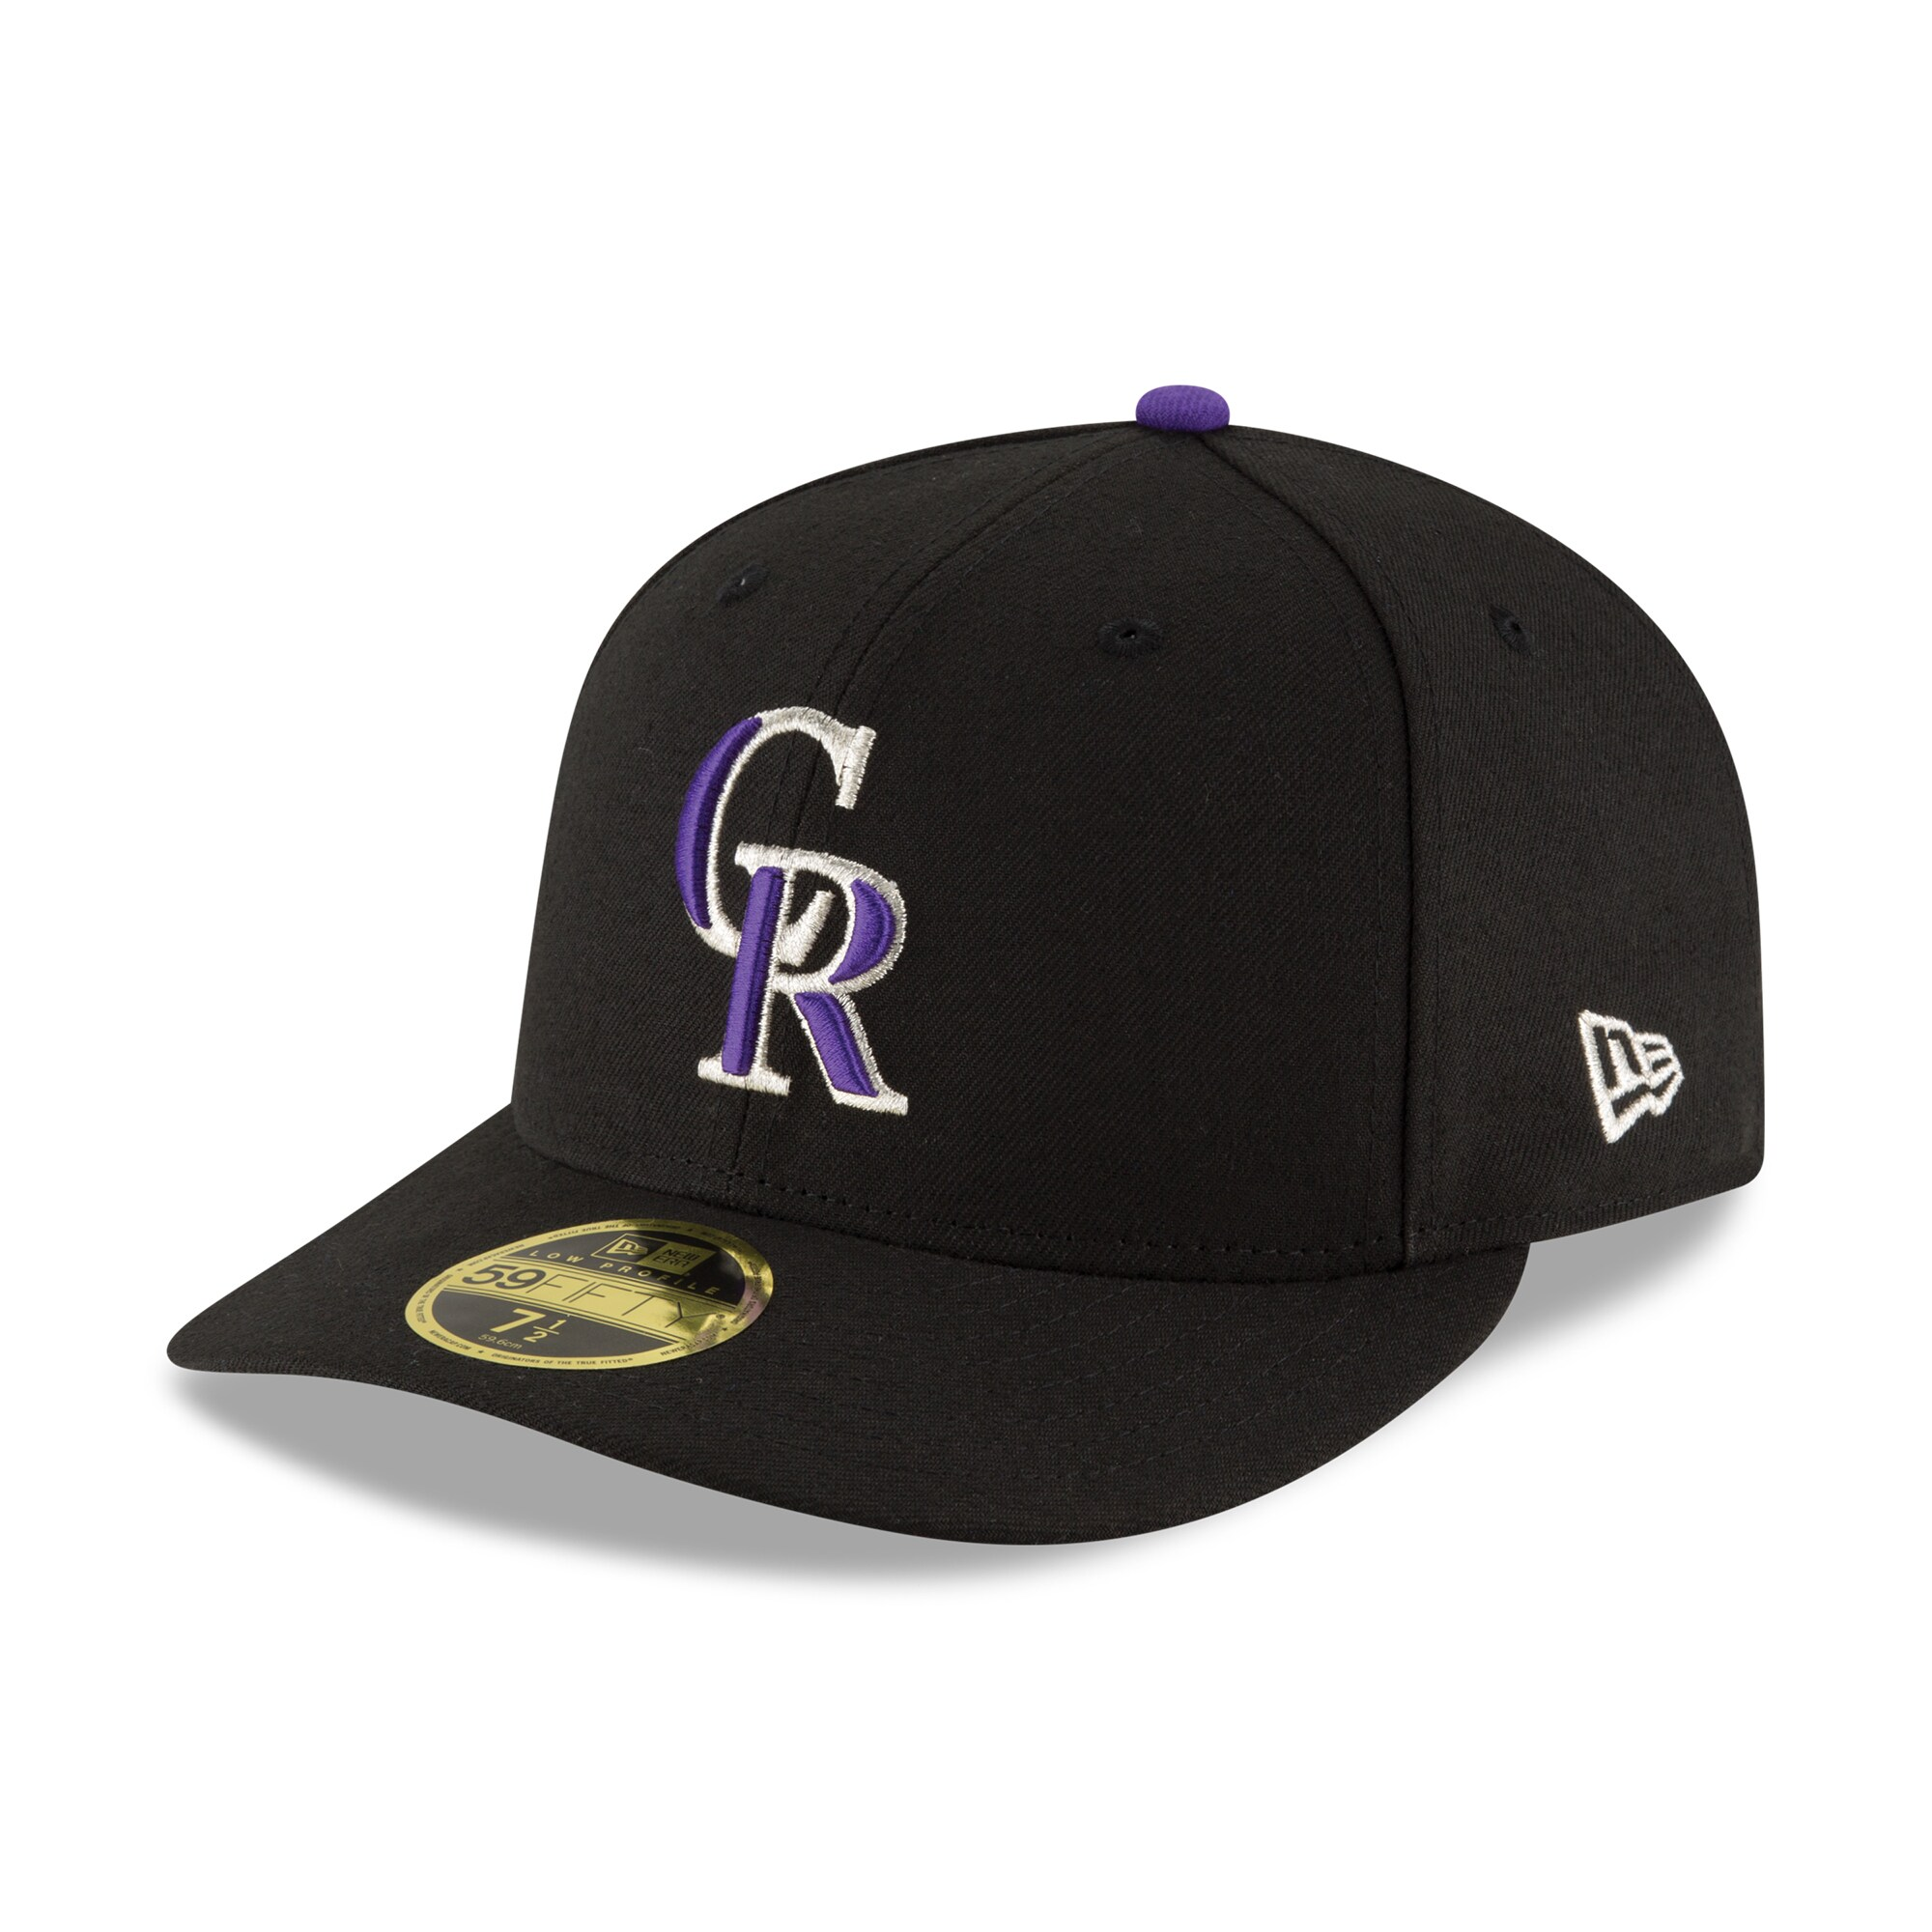 Colorado Rockies New Era Game Authentic Collection On-Field Low Profile 59FIFTY Fitted Hat - Black